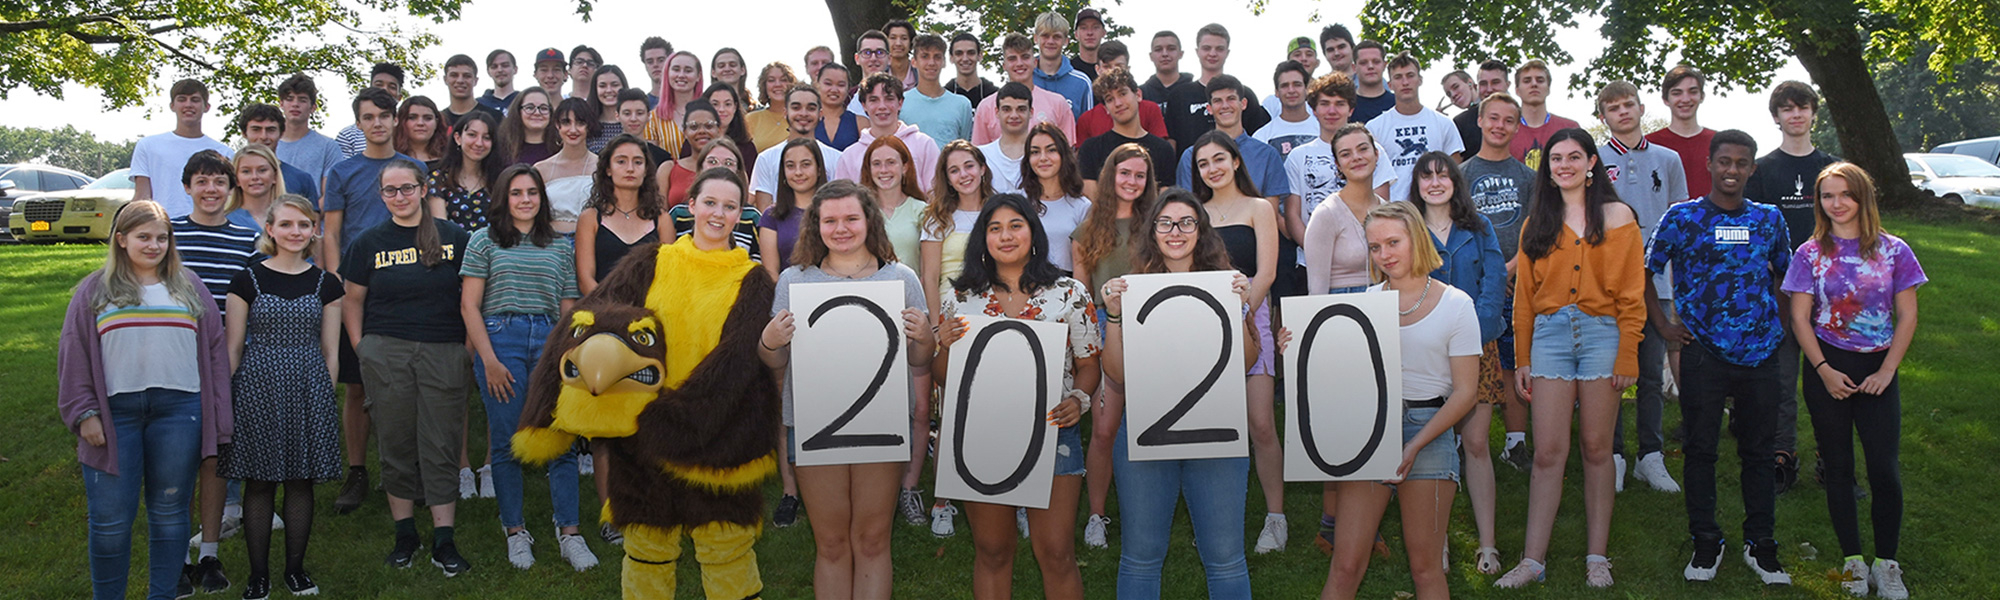 Rhinebeck Central School District Homepage With Dutchess County Fair Ground 2021 Calendar